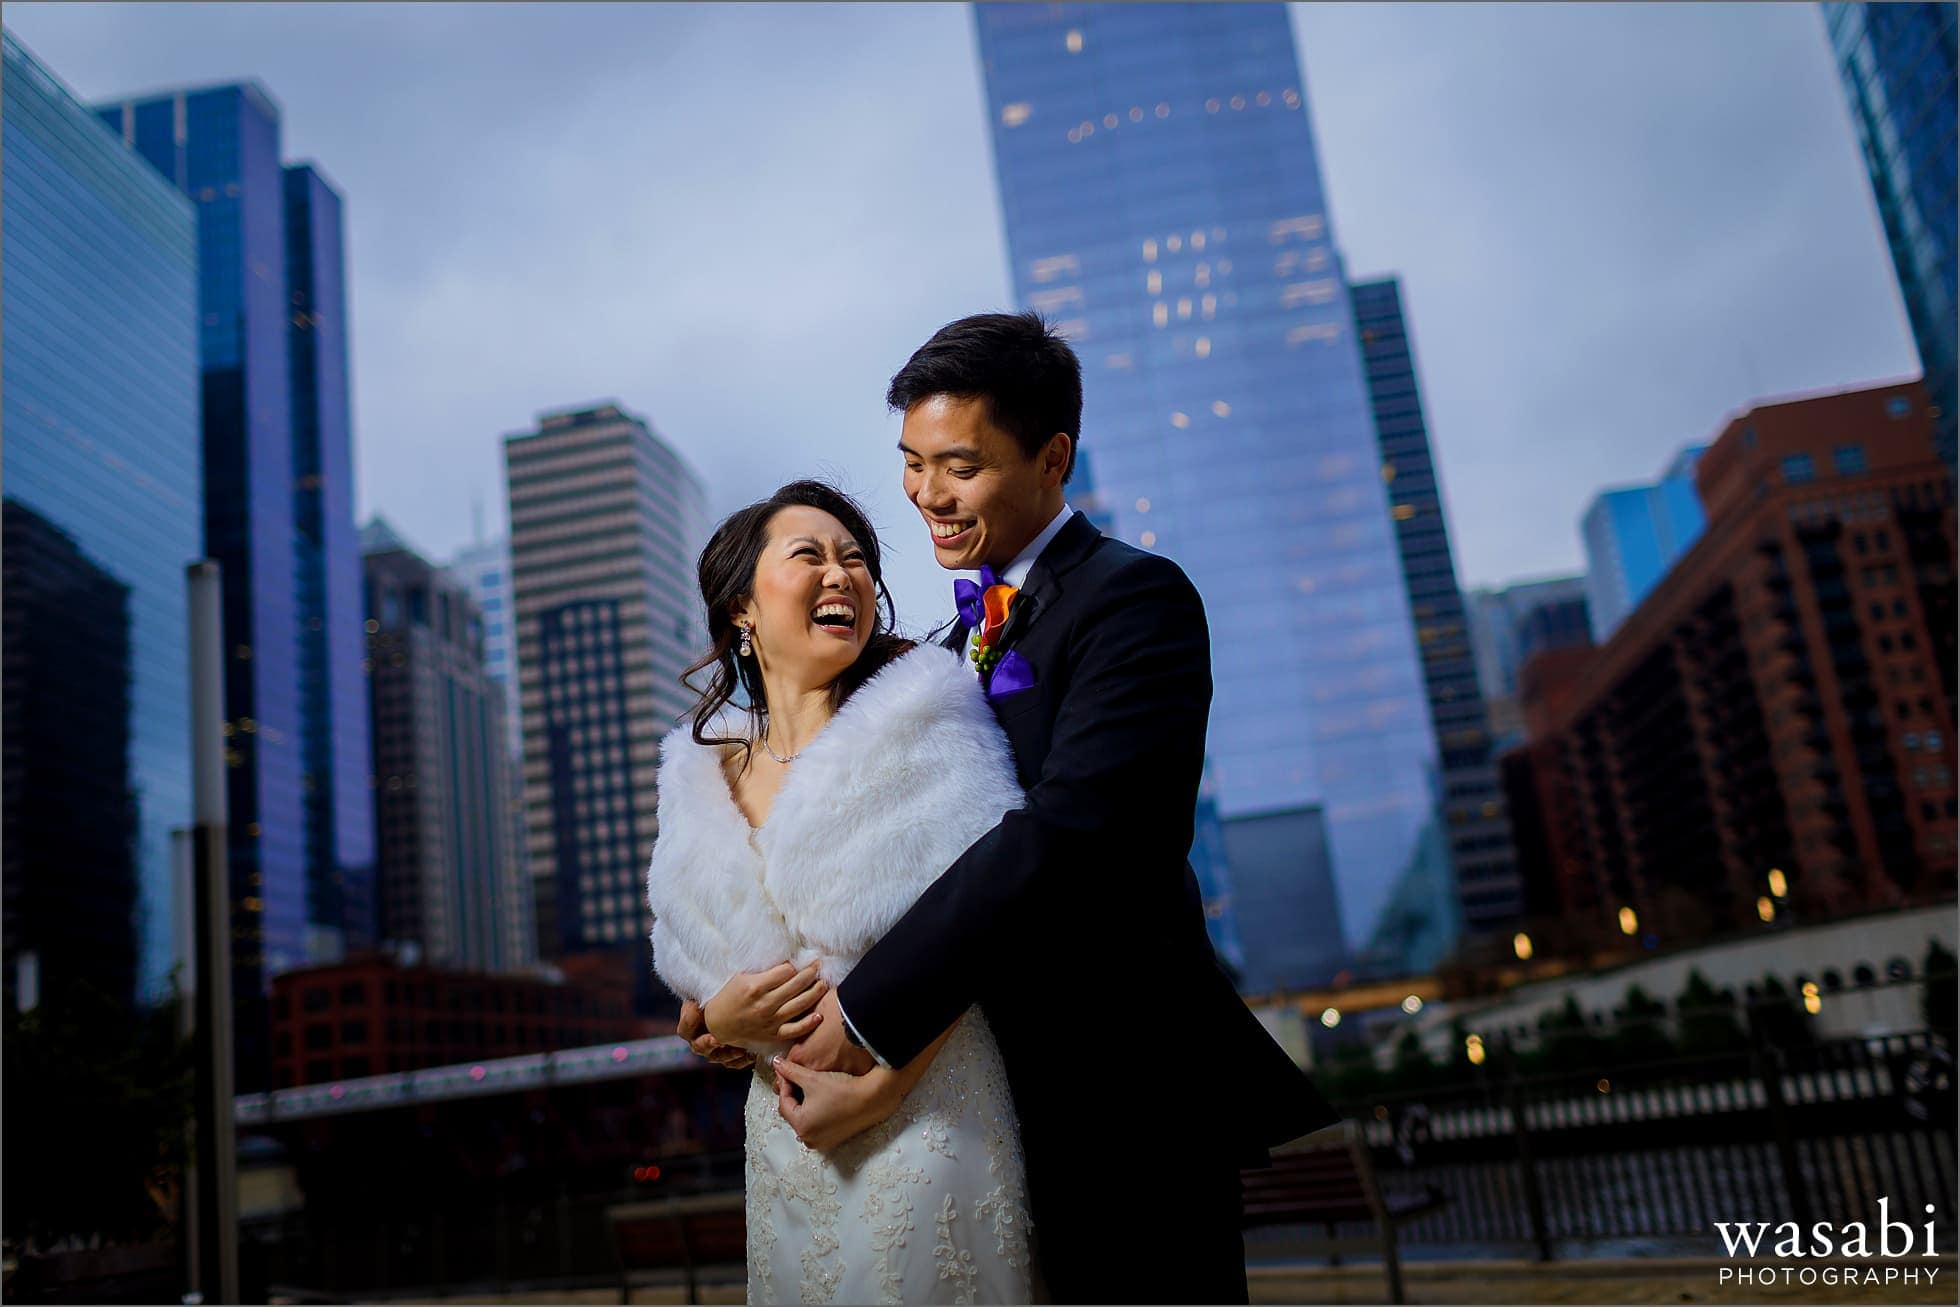 lit portrait of bride and groom with Chicago skyline and river in the background